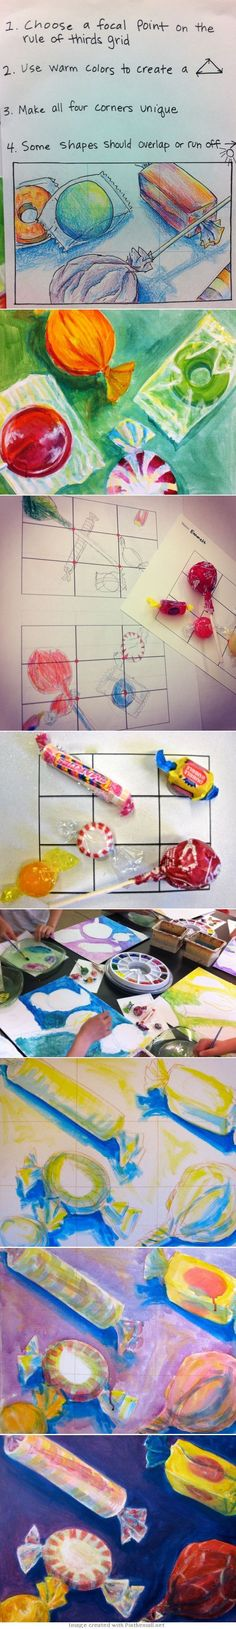 Wayne Thiebaud Candy Compositions Concepts: Composition, Acrylic Painting, Color Theory - created via http://pinthemall.net